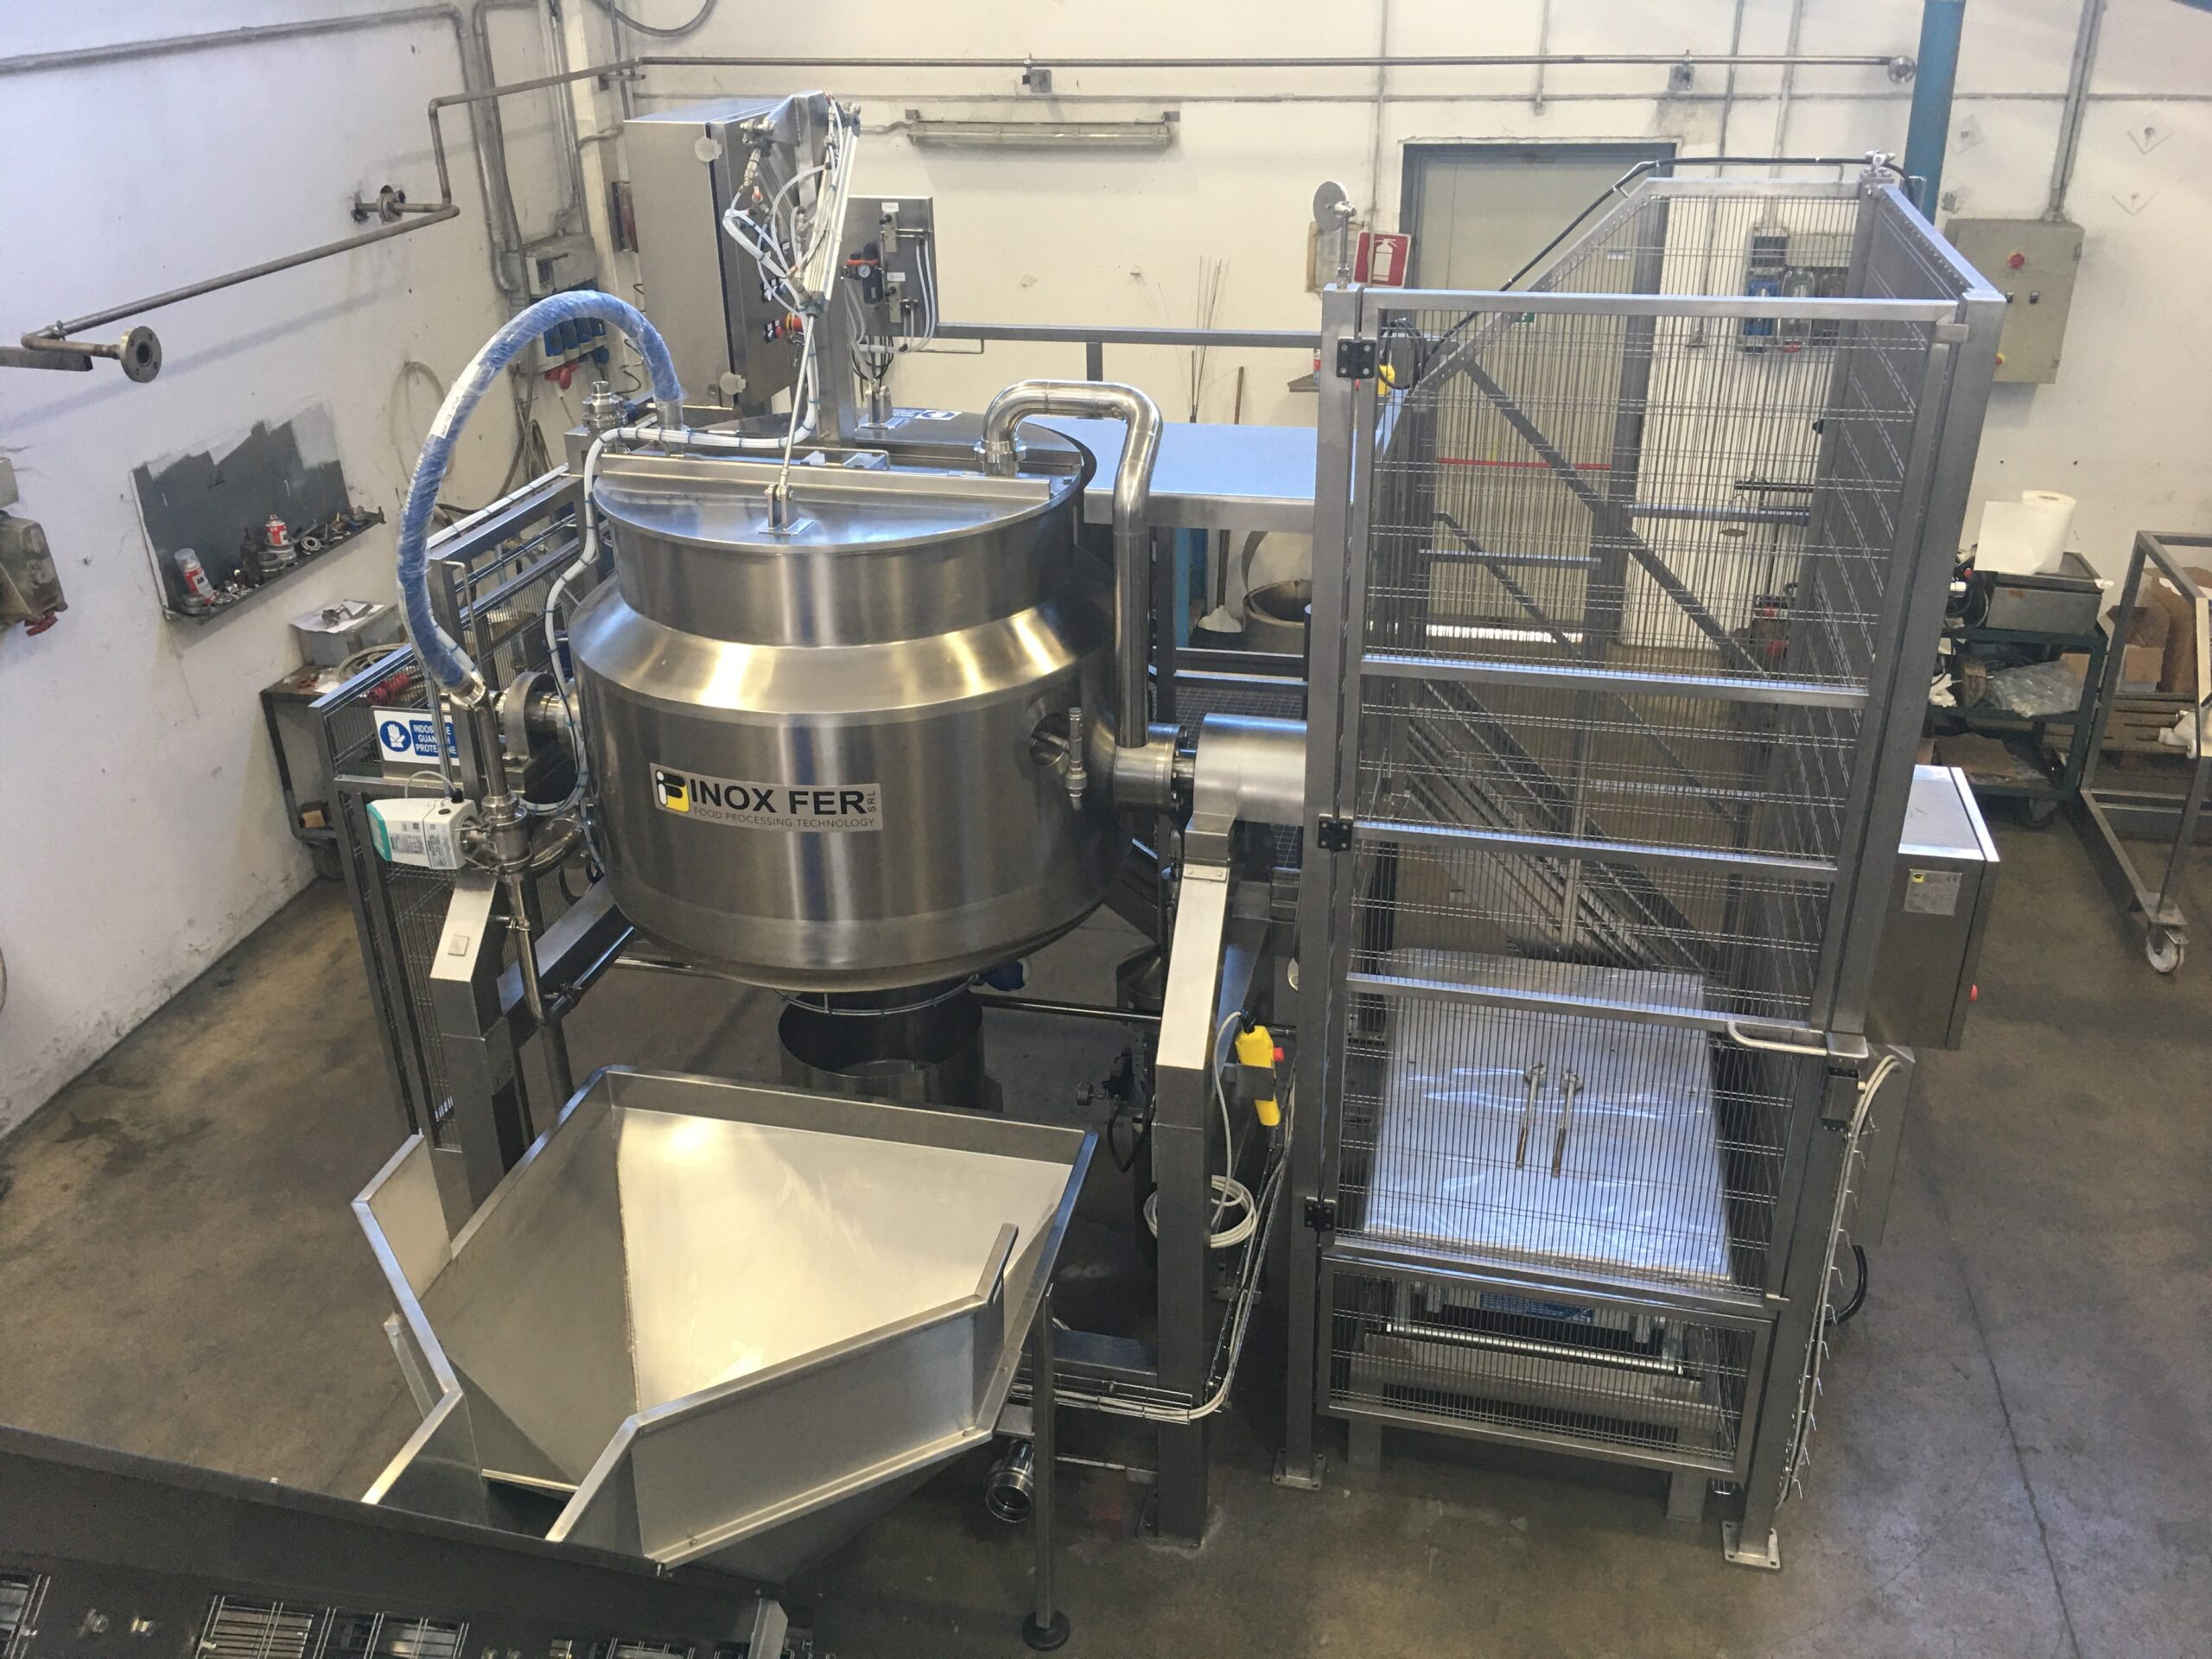 cooker kettle for sauce production